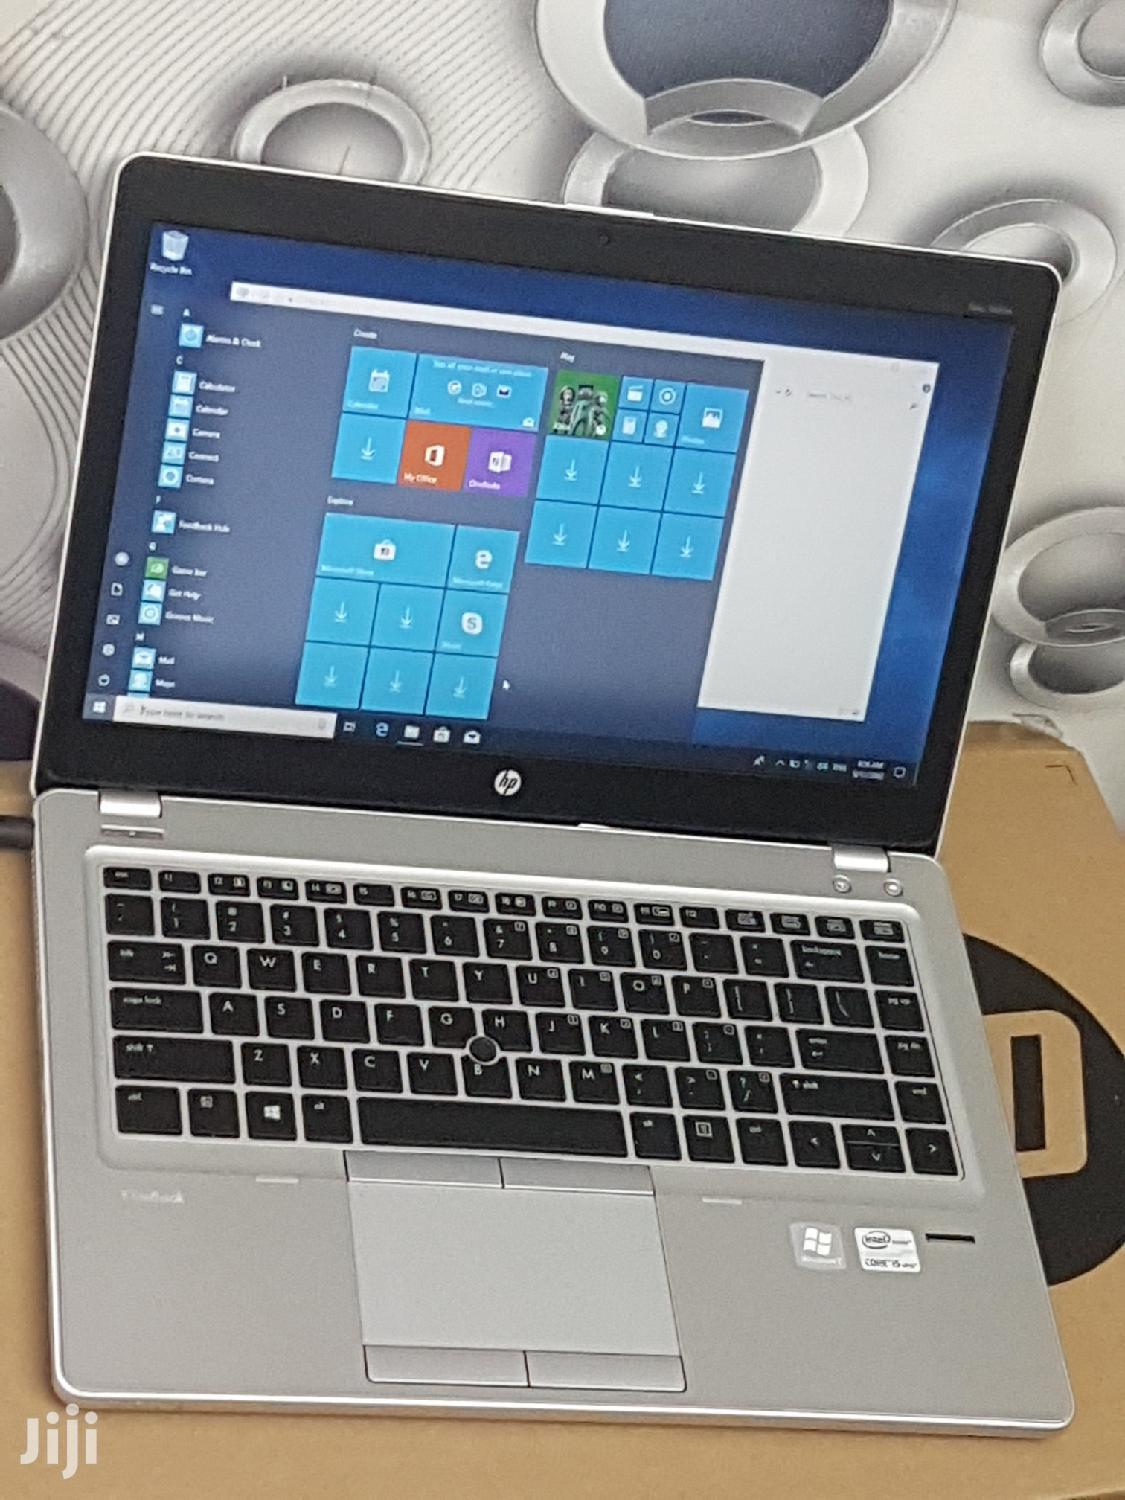 New Laptop HP EliteBook Folio 9470M 4GB Intel Core i5 HDD 500GB | Laptops & Computers for sale in Nairobi Central, Nairobi, Kenya